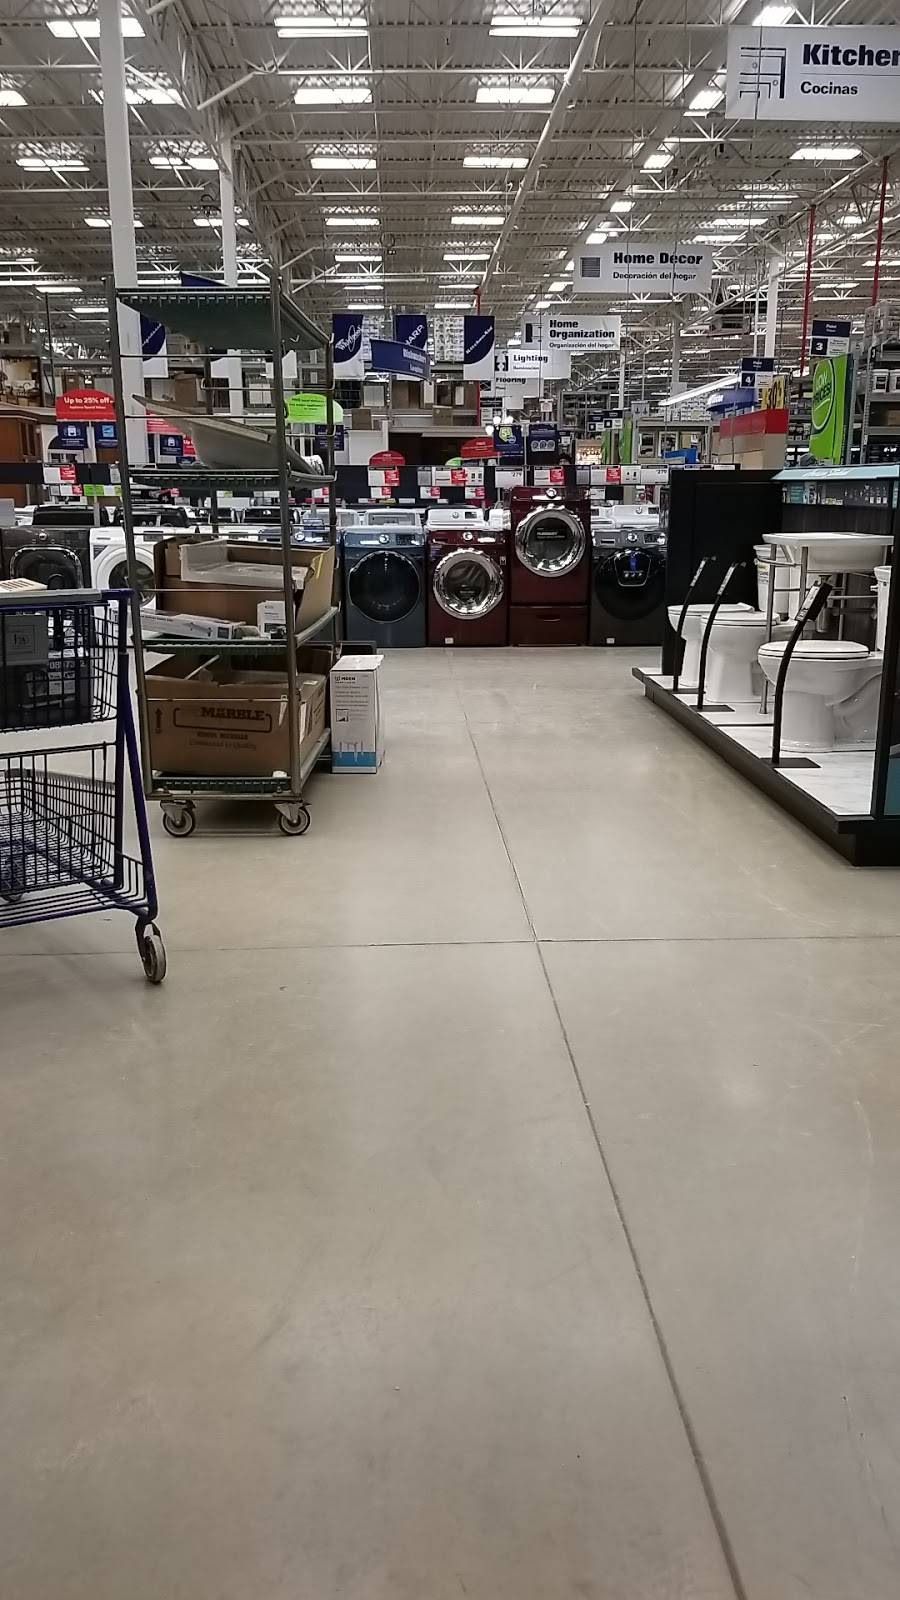 Lowes Home Improvement - hardware store    Photo 4 of 8   Address: 21000 West Rd, Woodhaven, MI 48183, USA   Phone: (734) 365-0034